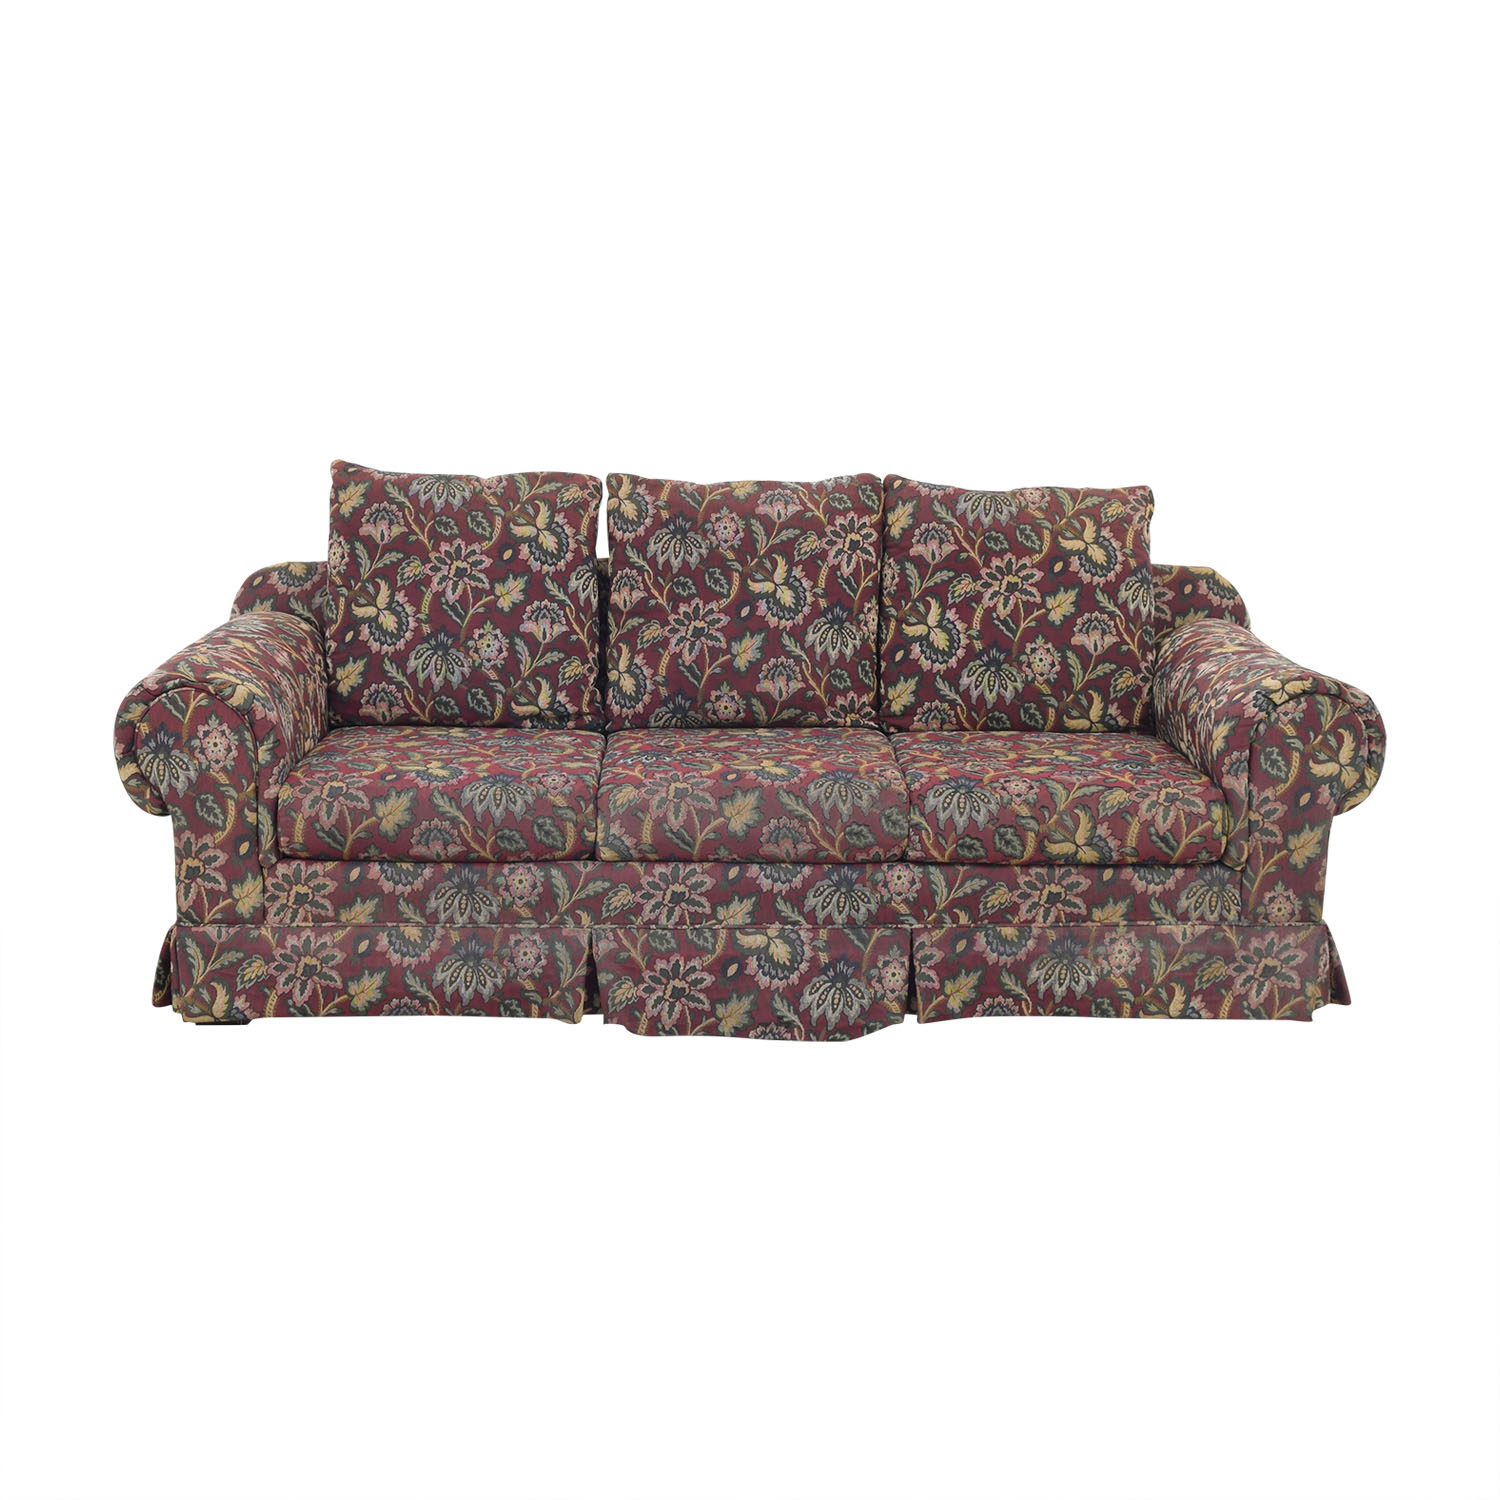 buy Huffman Koos Huffman Koos Traditional Roll Arm Sofa online